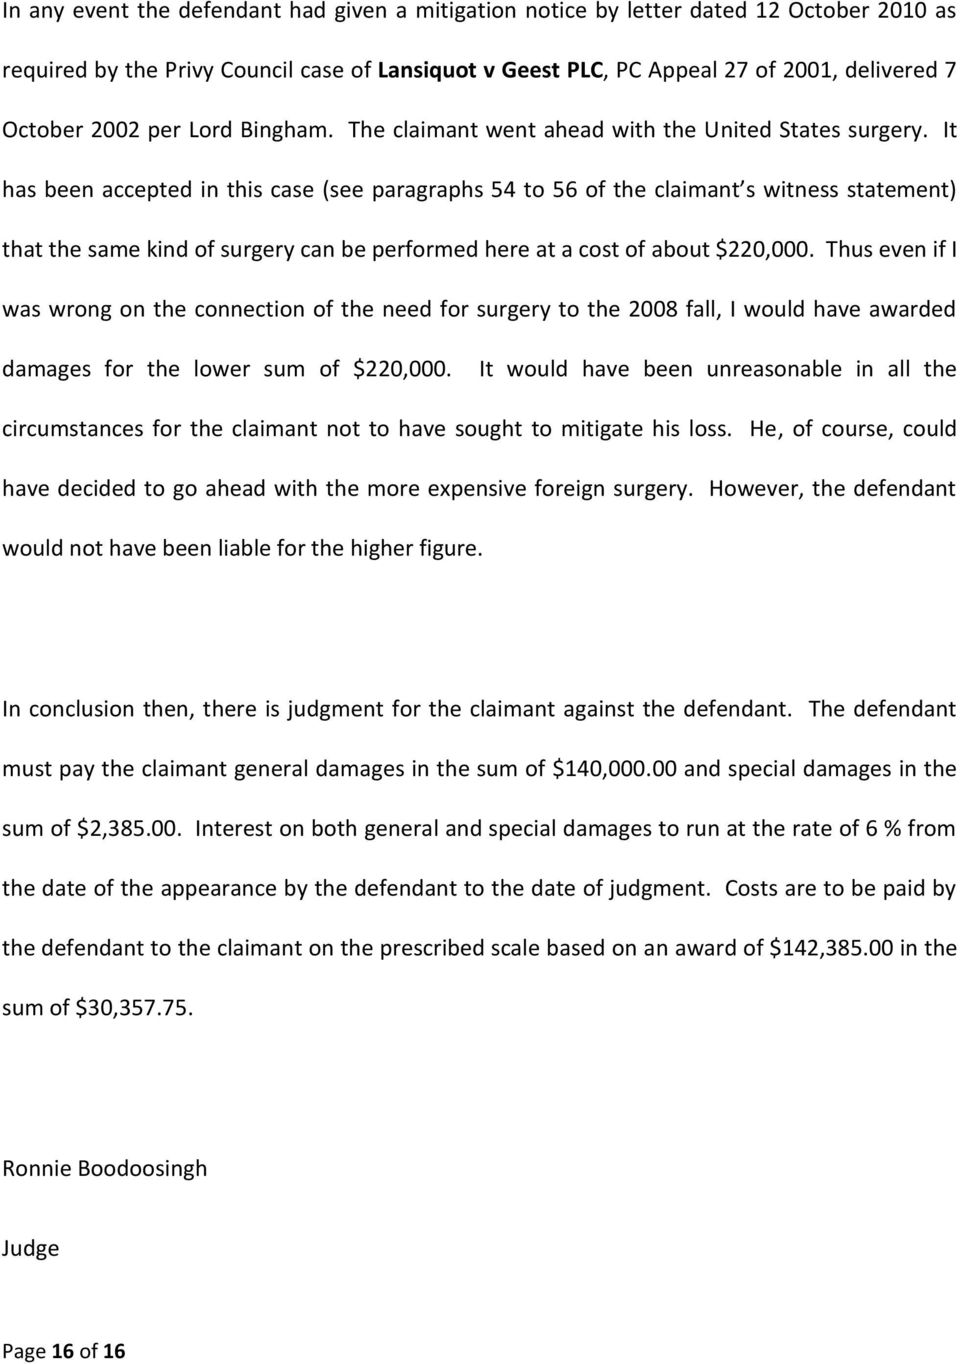 It has been accepted in this case (see paragraphs 54 to 56 of the claimant s witness statement) that the same kind of surgery can be performed here at a cost of about $220,000.